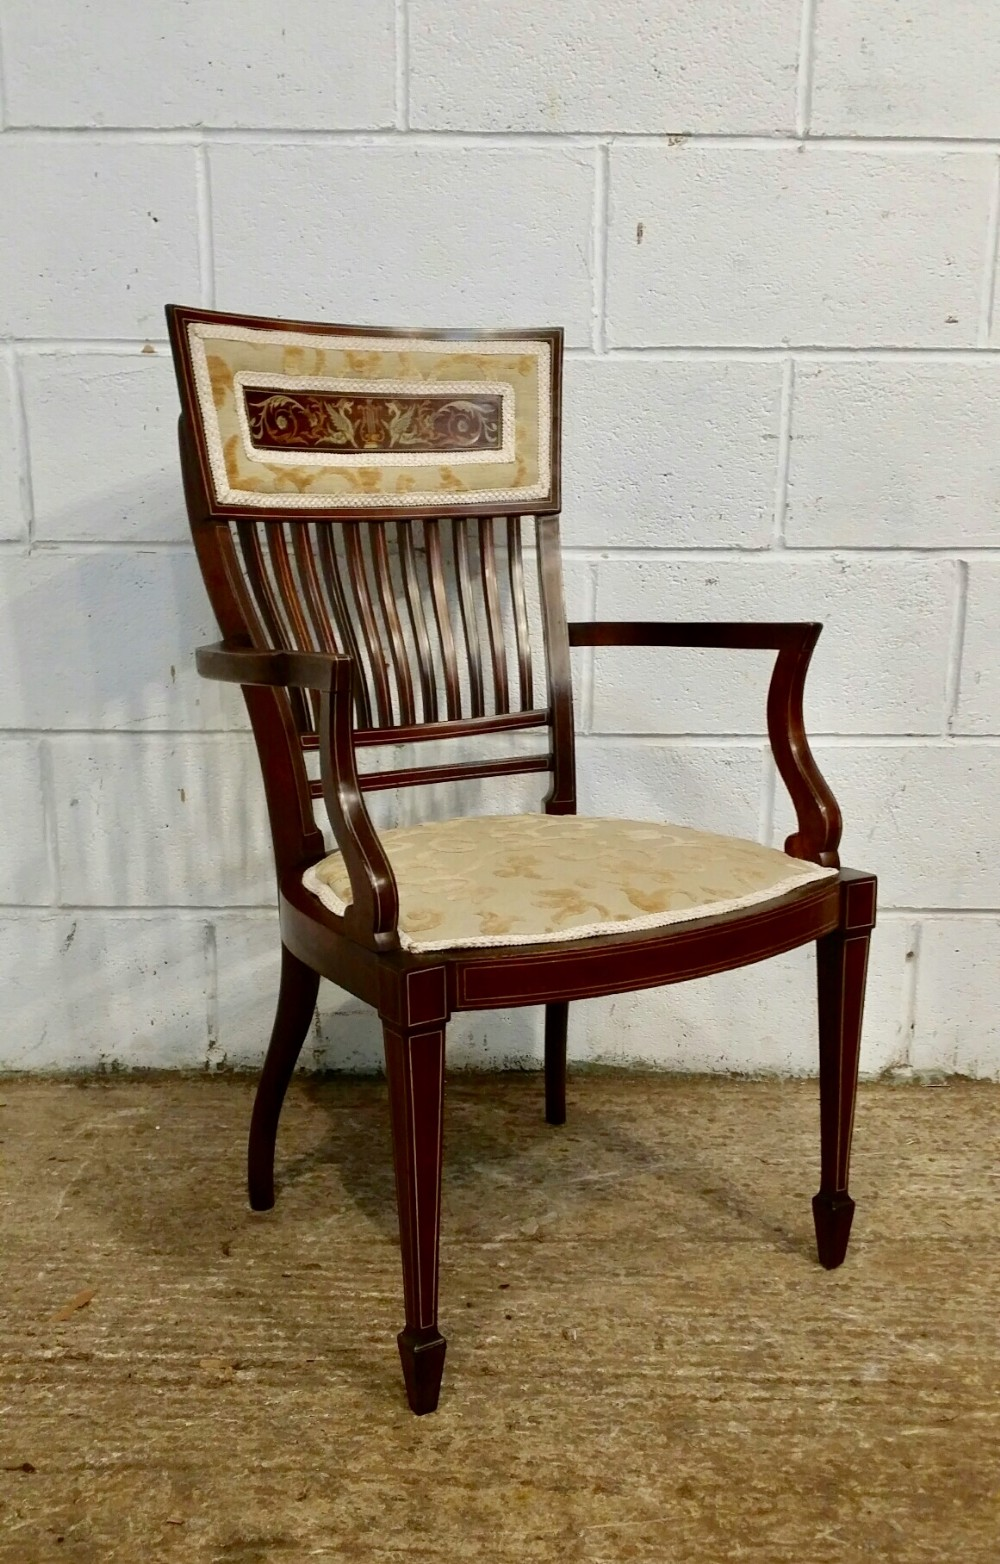 antique art nouveau inlaid mahogany salon desk chair c1890